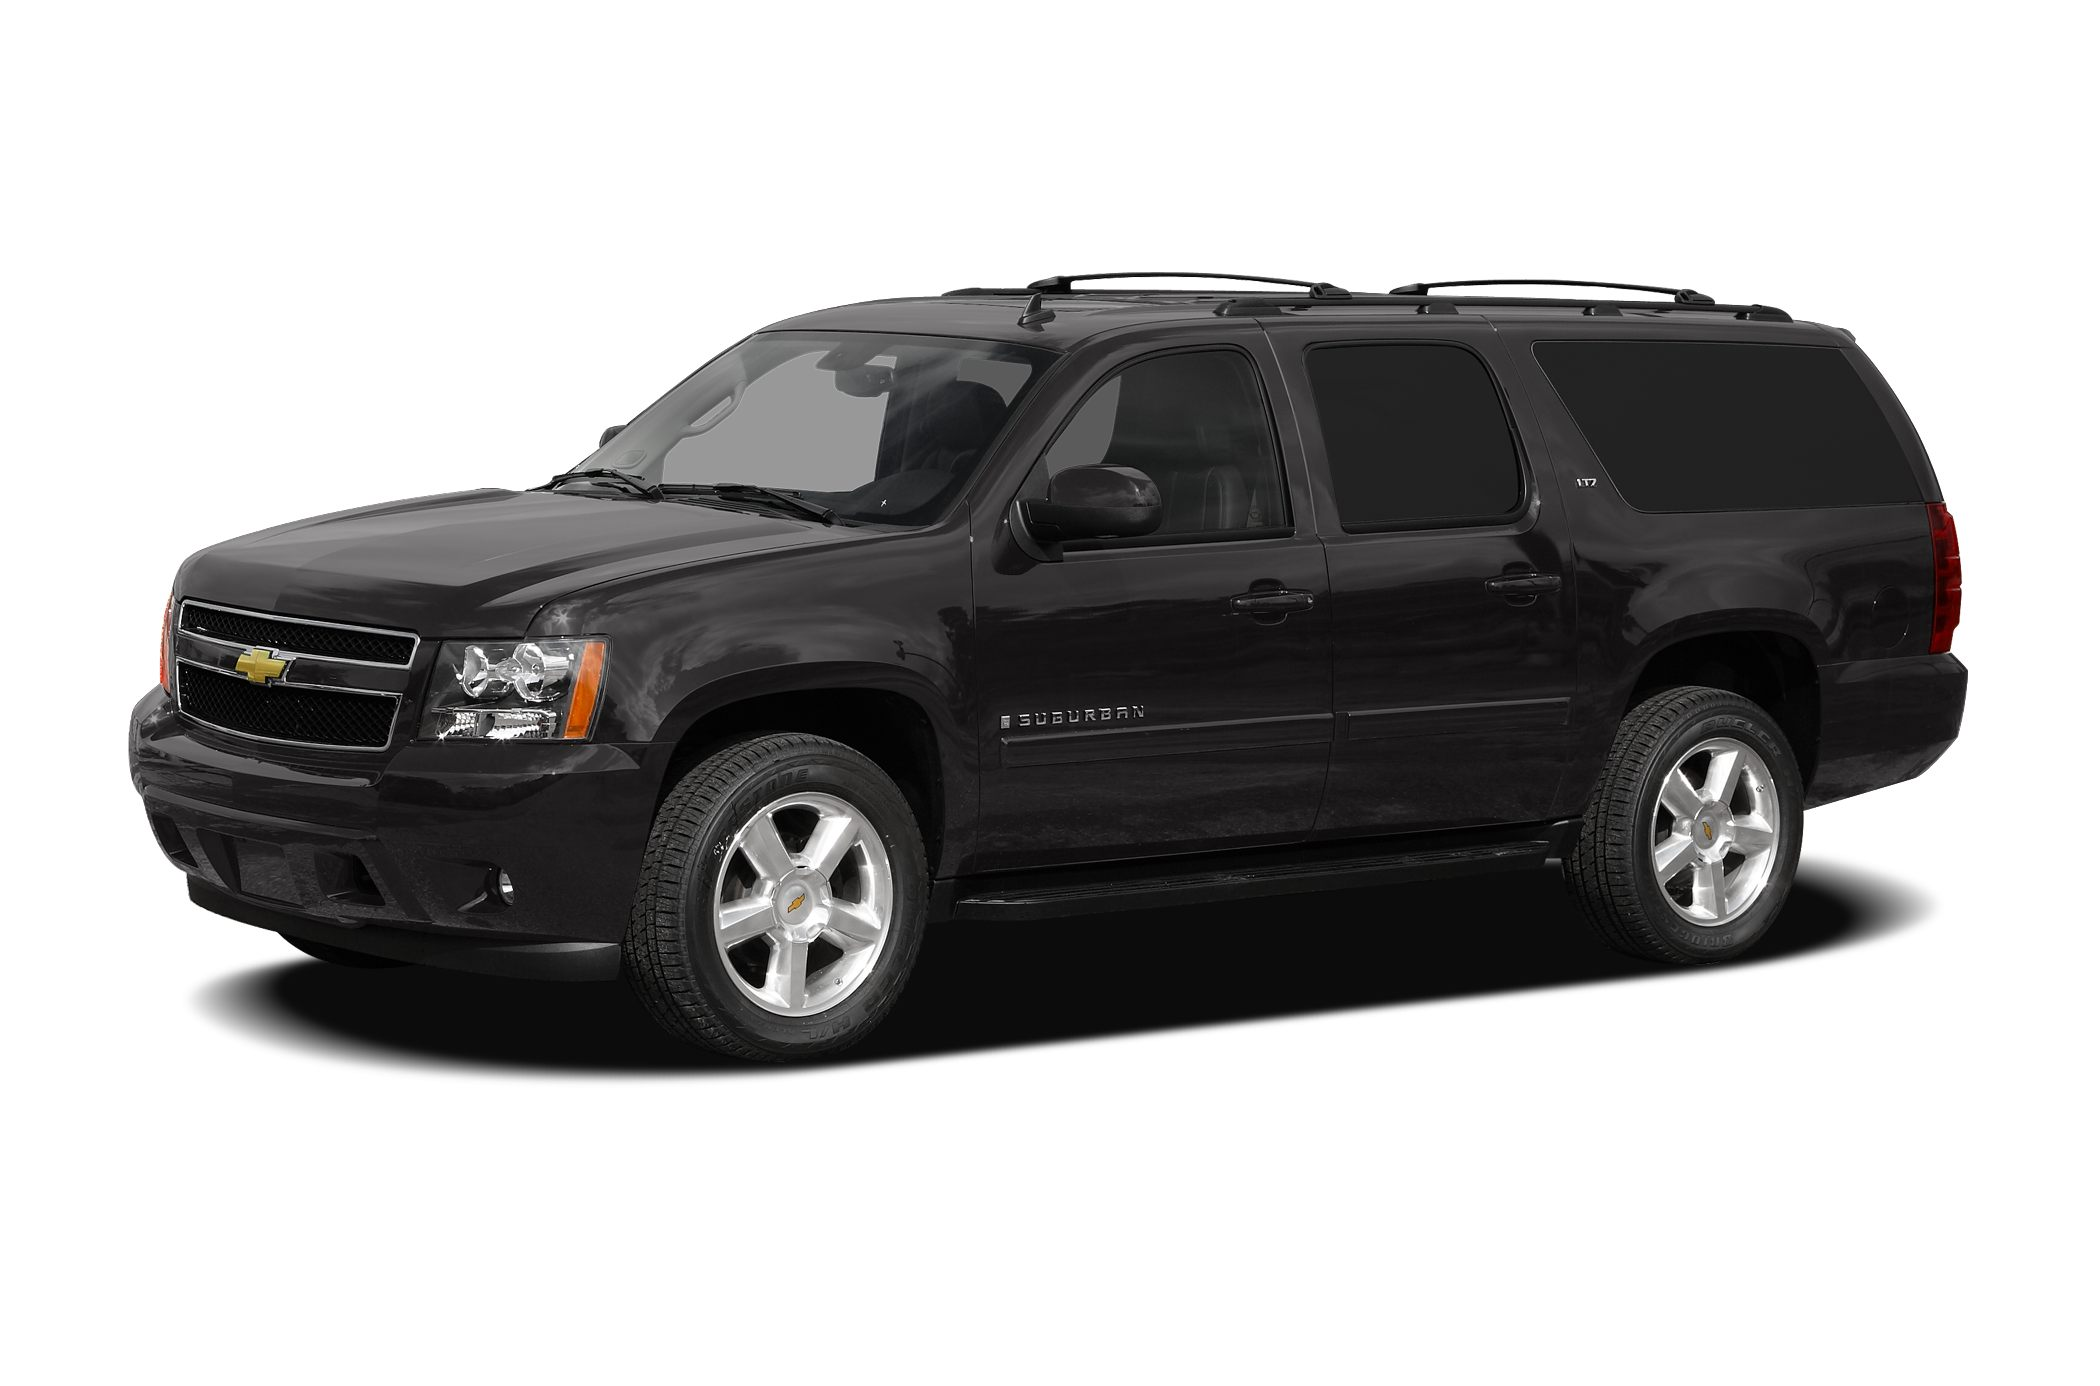 2007 Chevrolet Suburban 1500 LS SUV for sale in Greenville for $21,990 with 130,753 miles